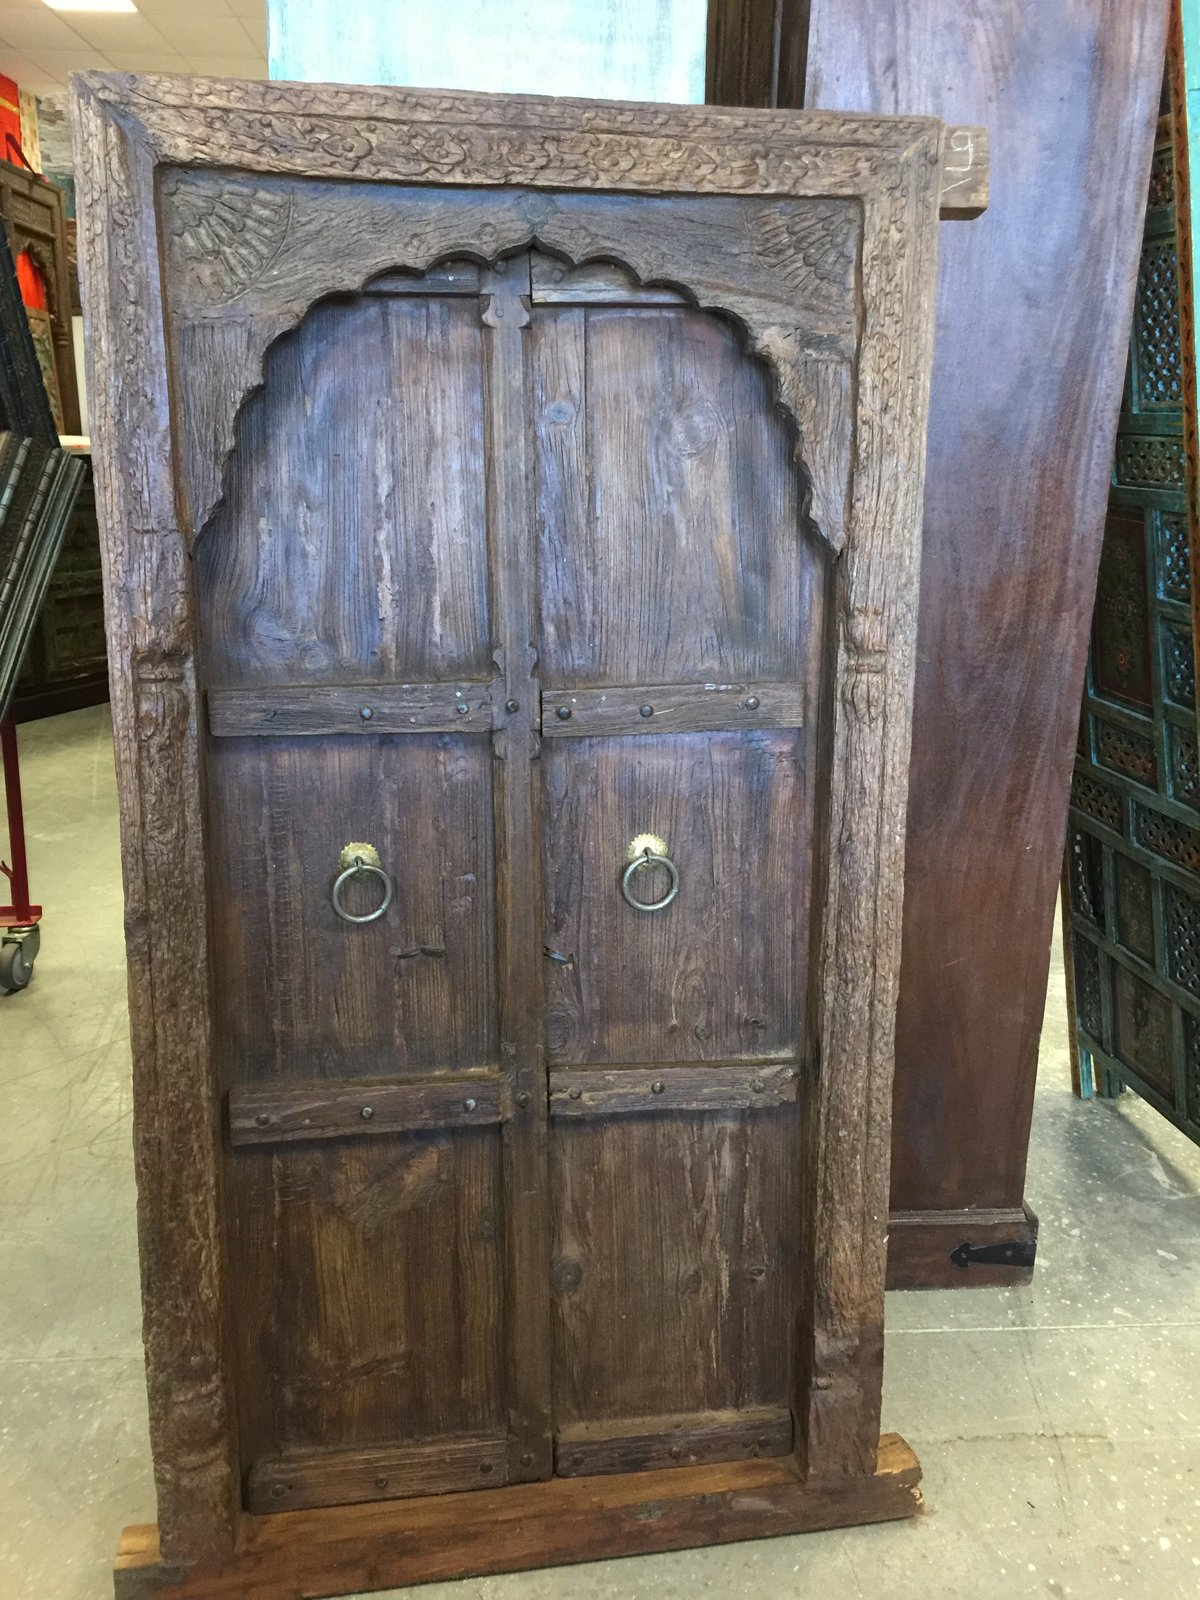 Mogulinterior Antique Vintage Teak Window Terrace Door Arched MEhrab Carved Jharokha & Floral Carved Solid Frame Rustic Luxe by Mogul Interior